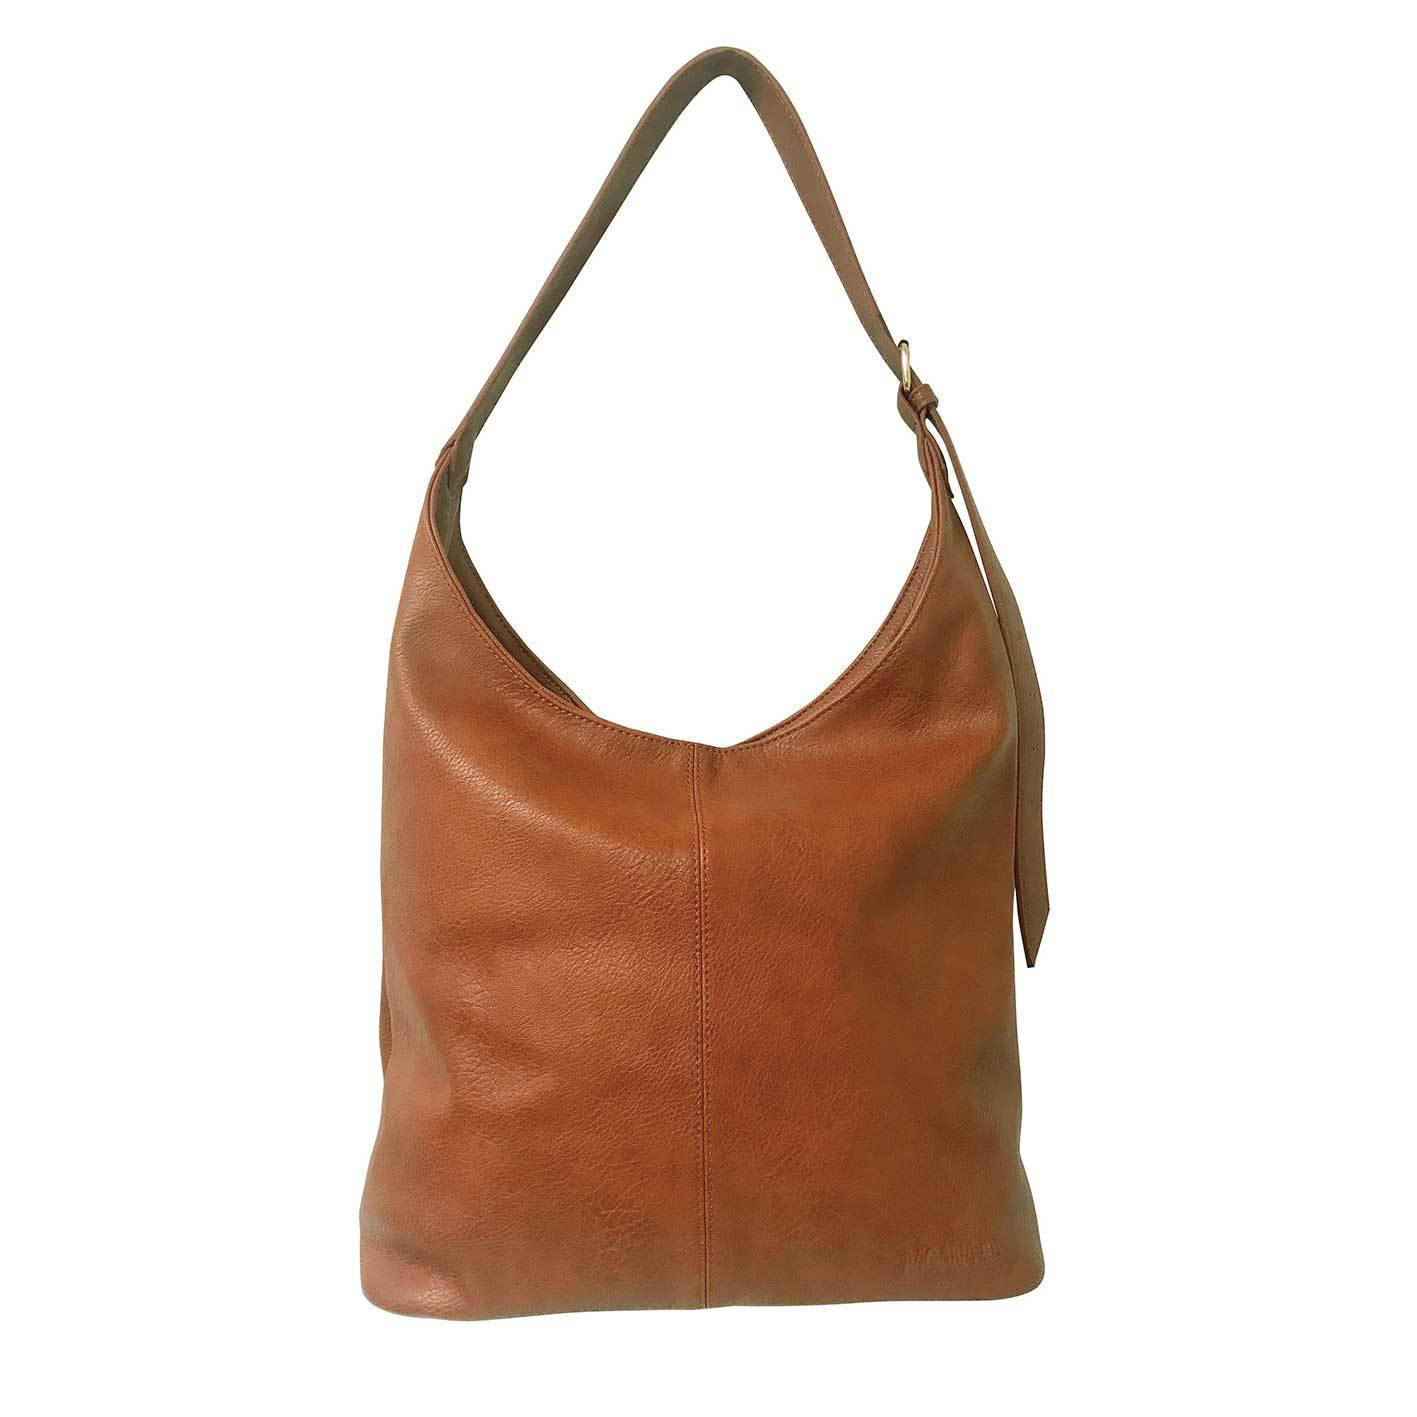 Moana Road Roseneath Handbag - Tan | Koop.co.nz